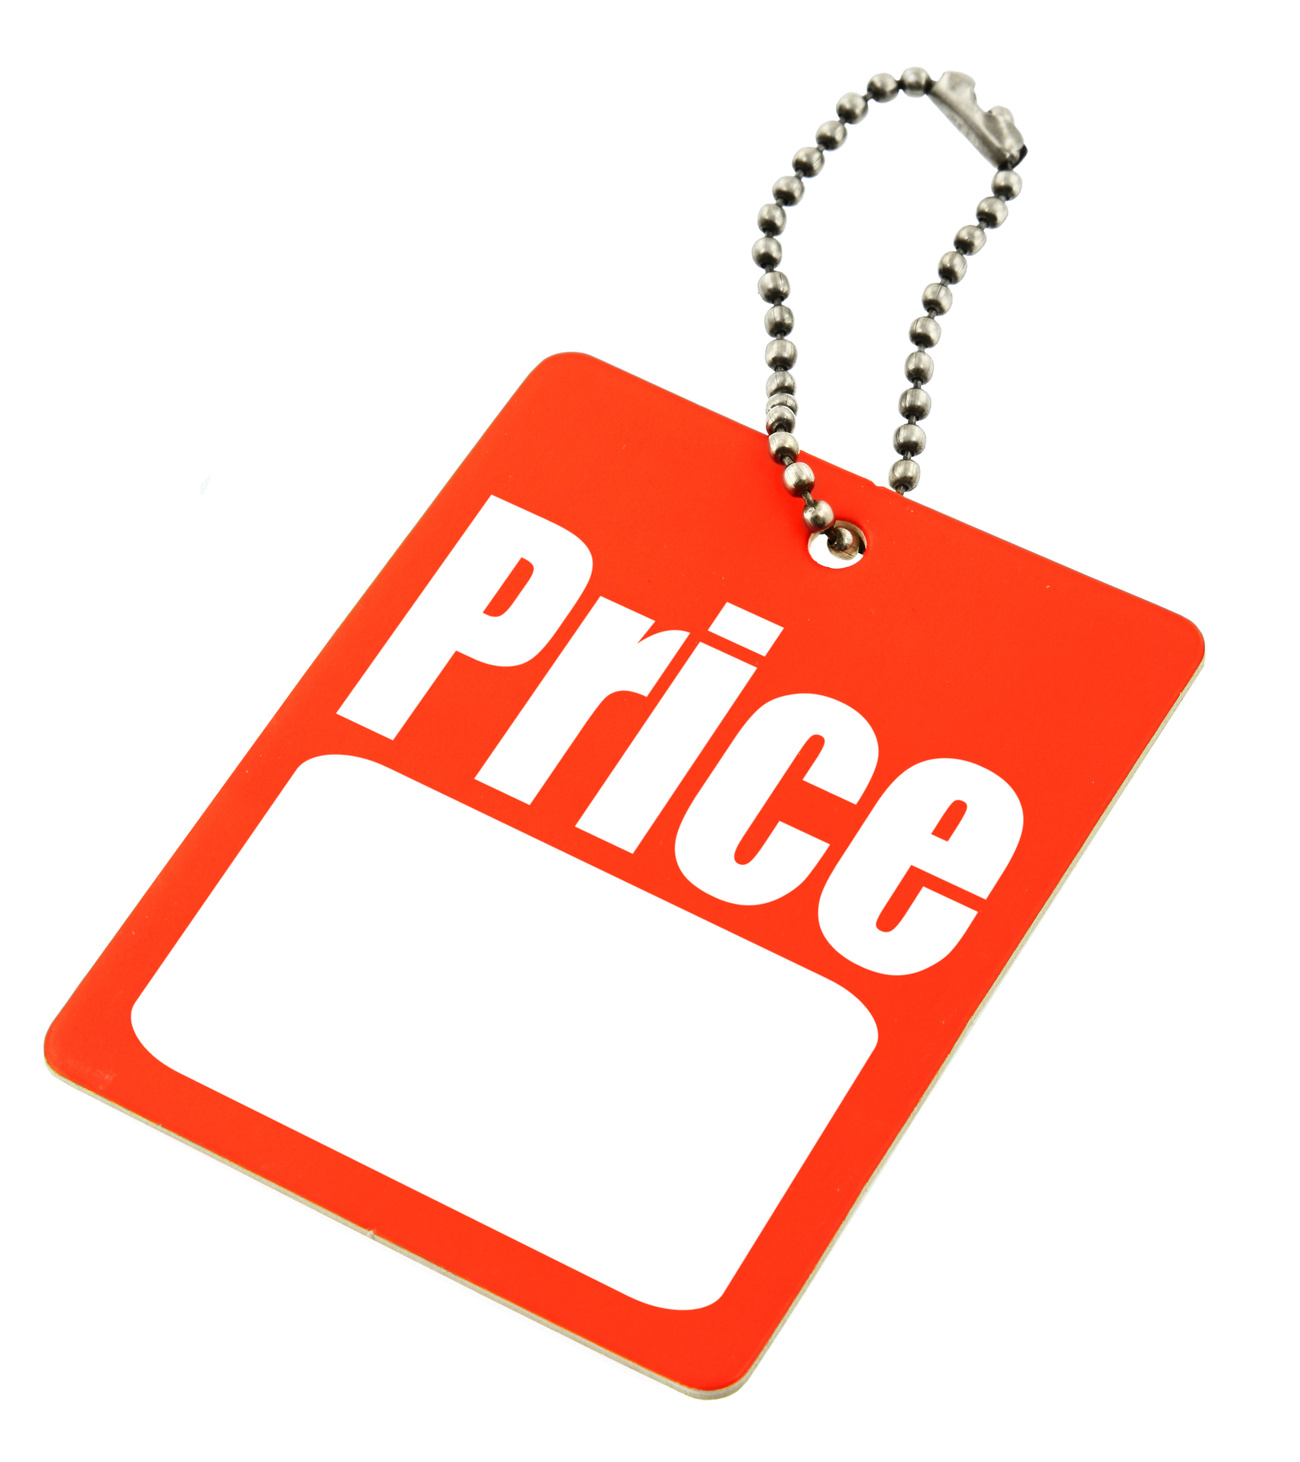 Red clipart price tag #4